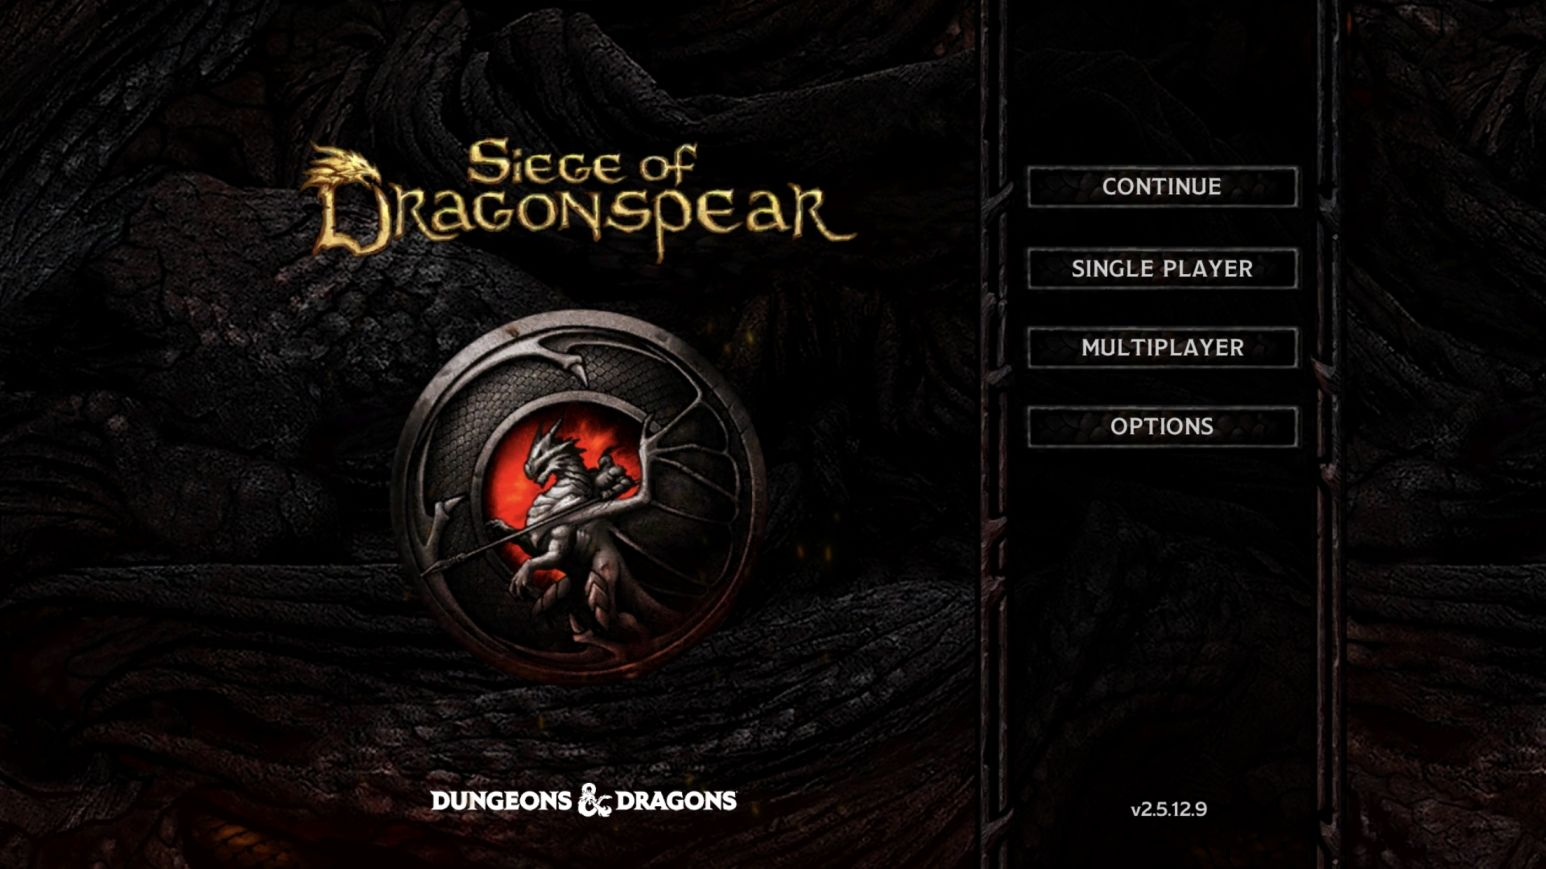 Siege of Dragonspear (copie d'écran 1 sur iPhone / iPad)